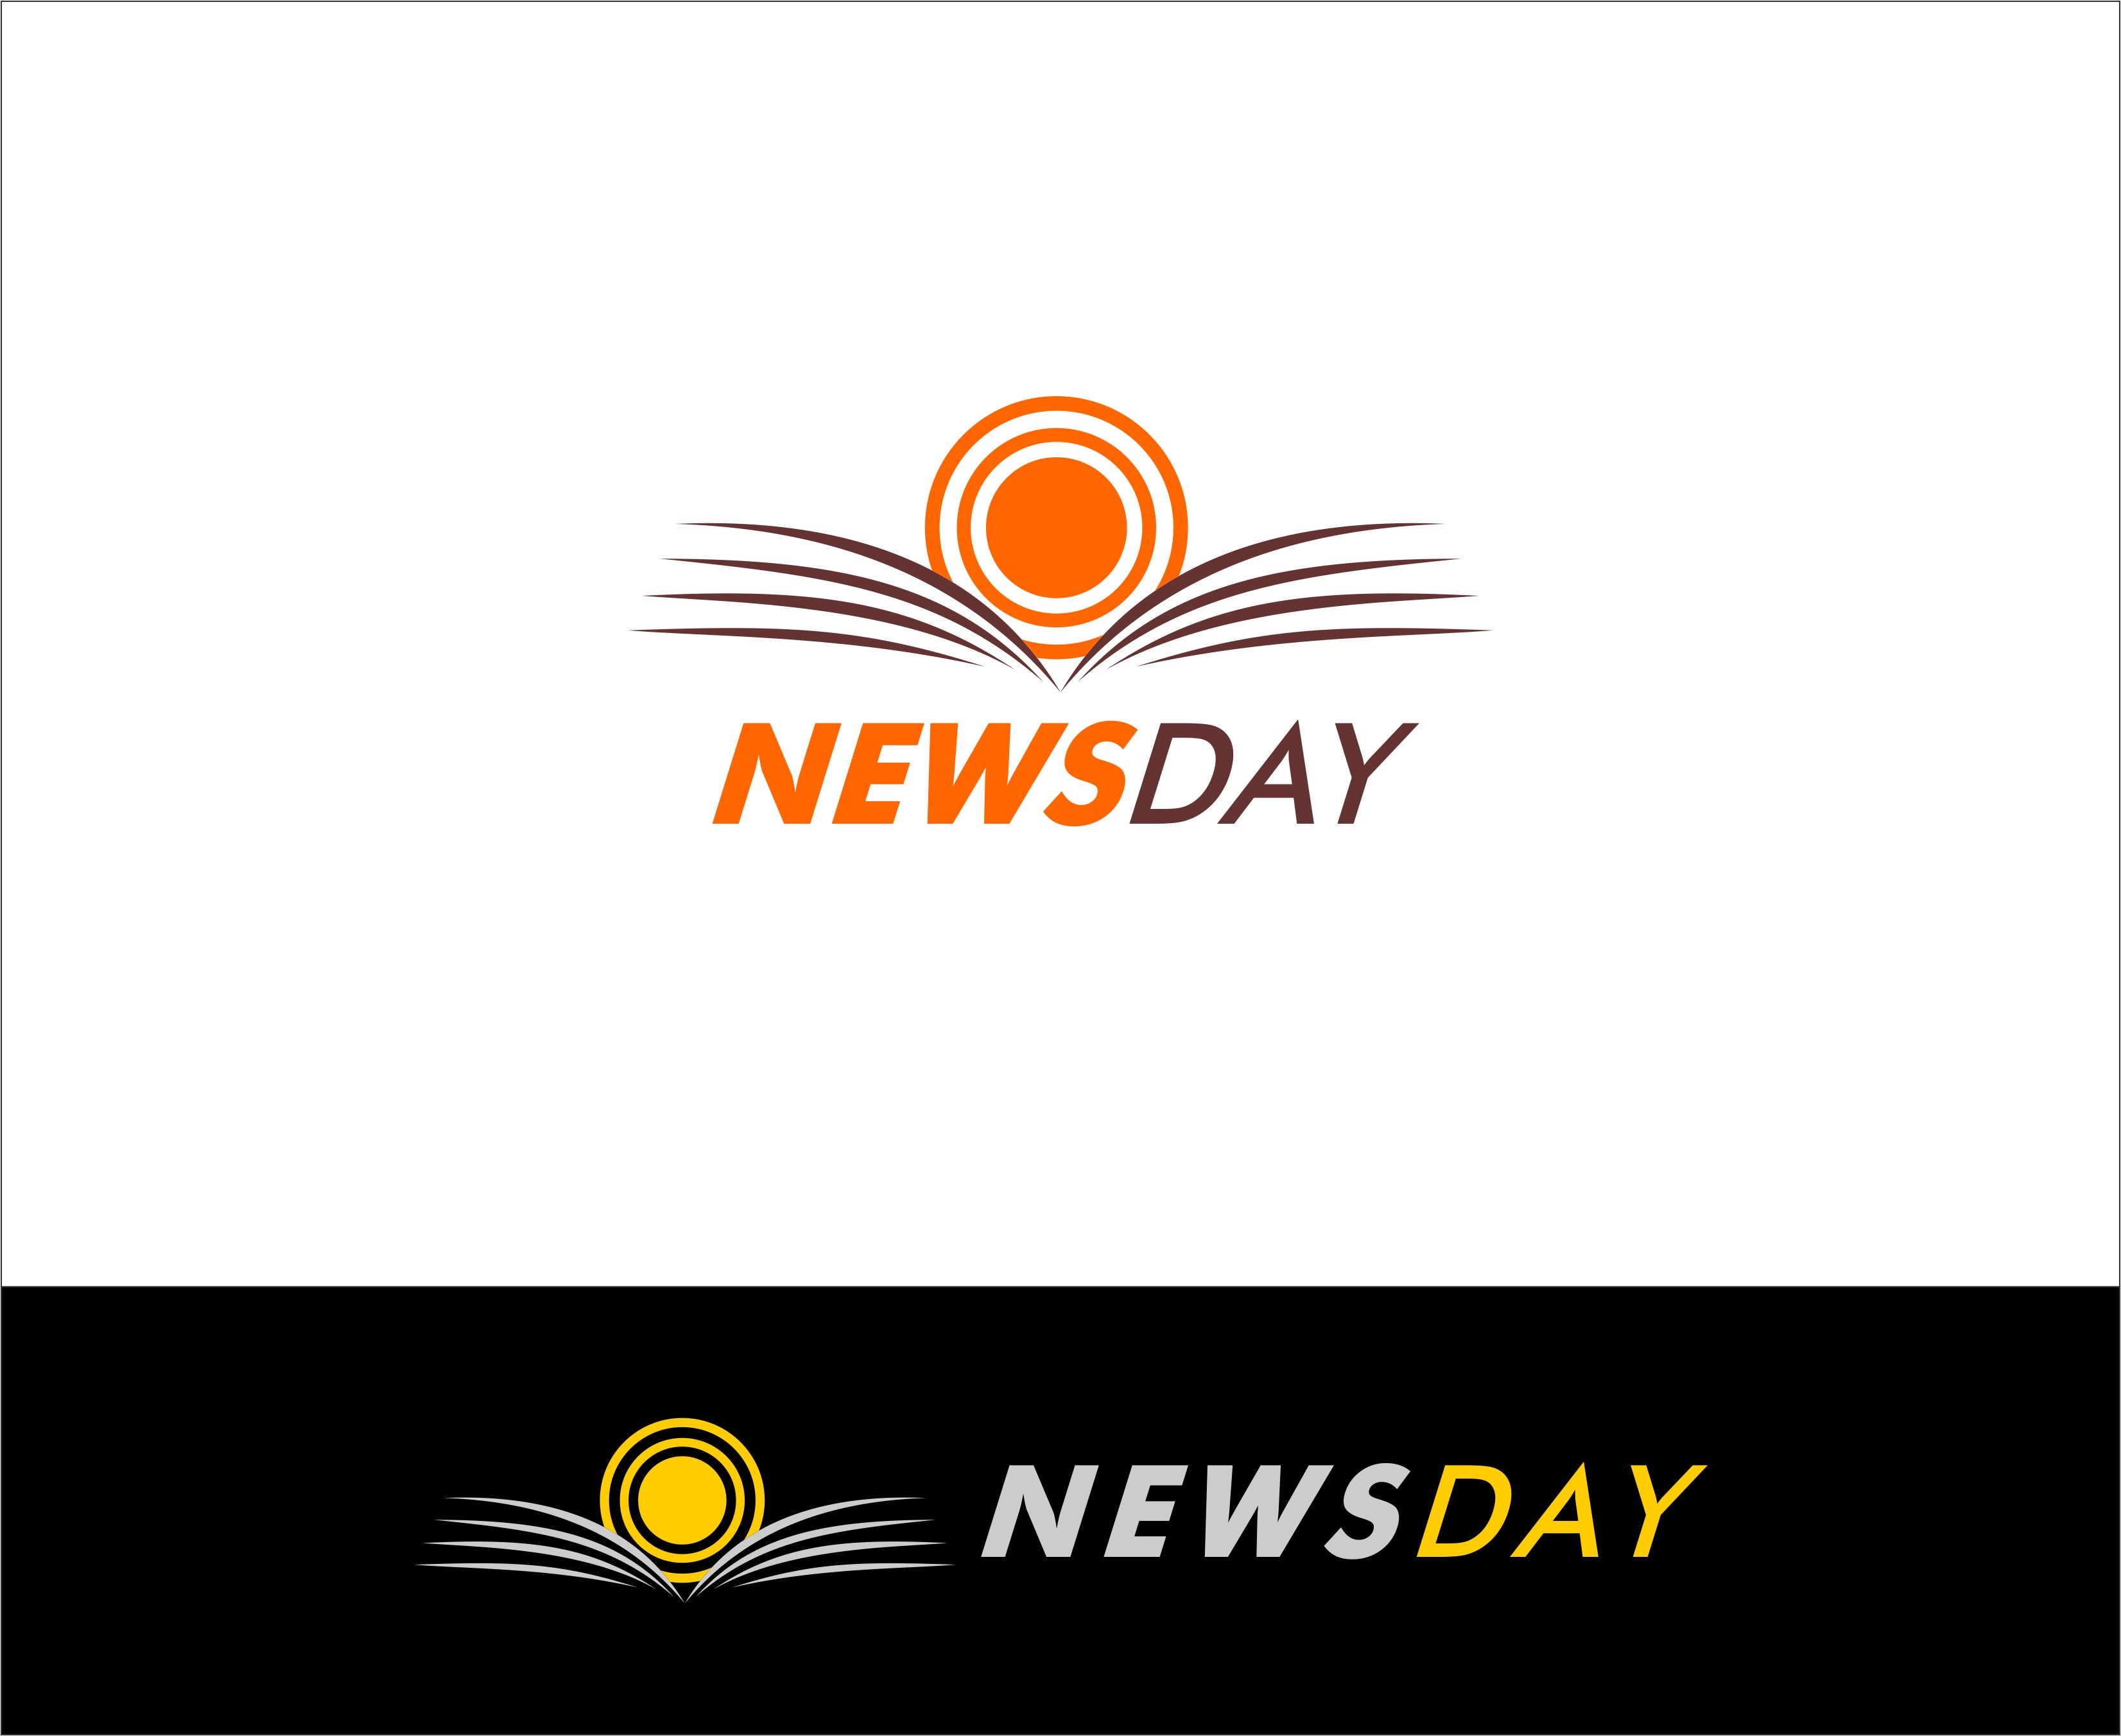 Logo Design by Mhon_Rose - Entry No. 50 in the Logo Design Contest Artistic Logo Design for Newsday.